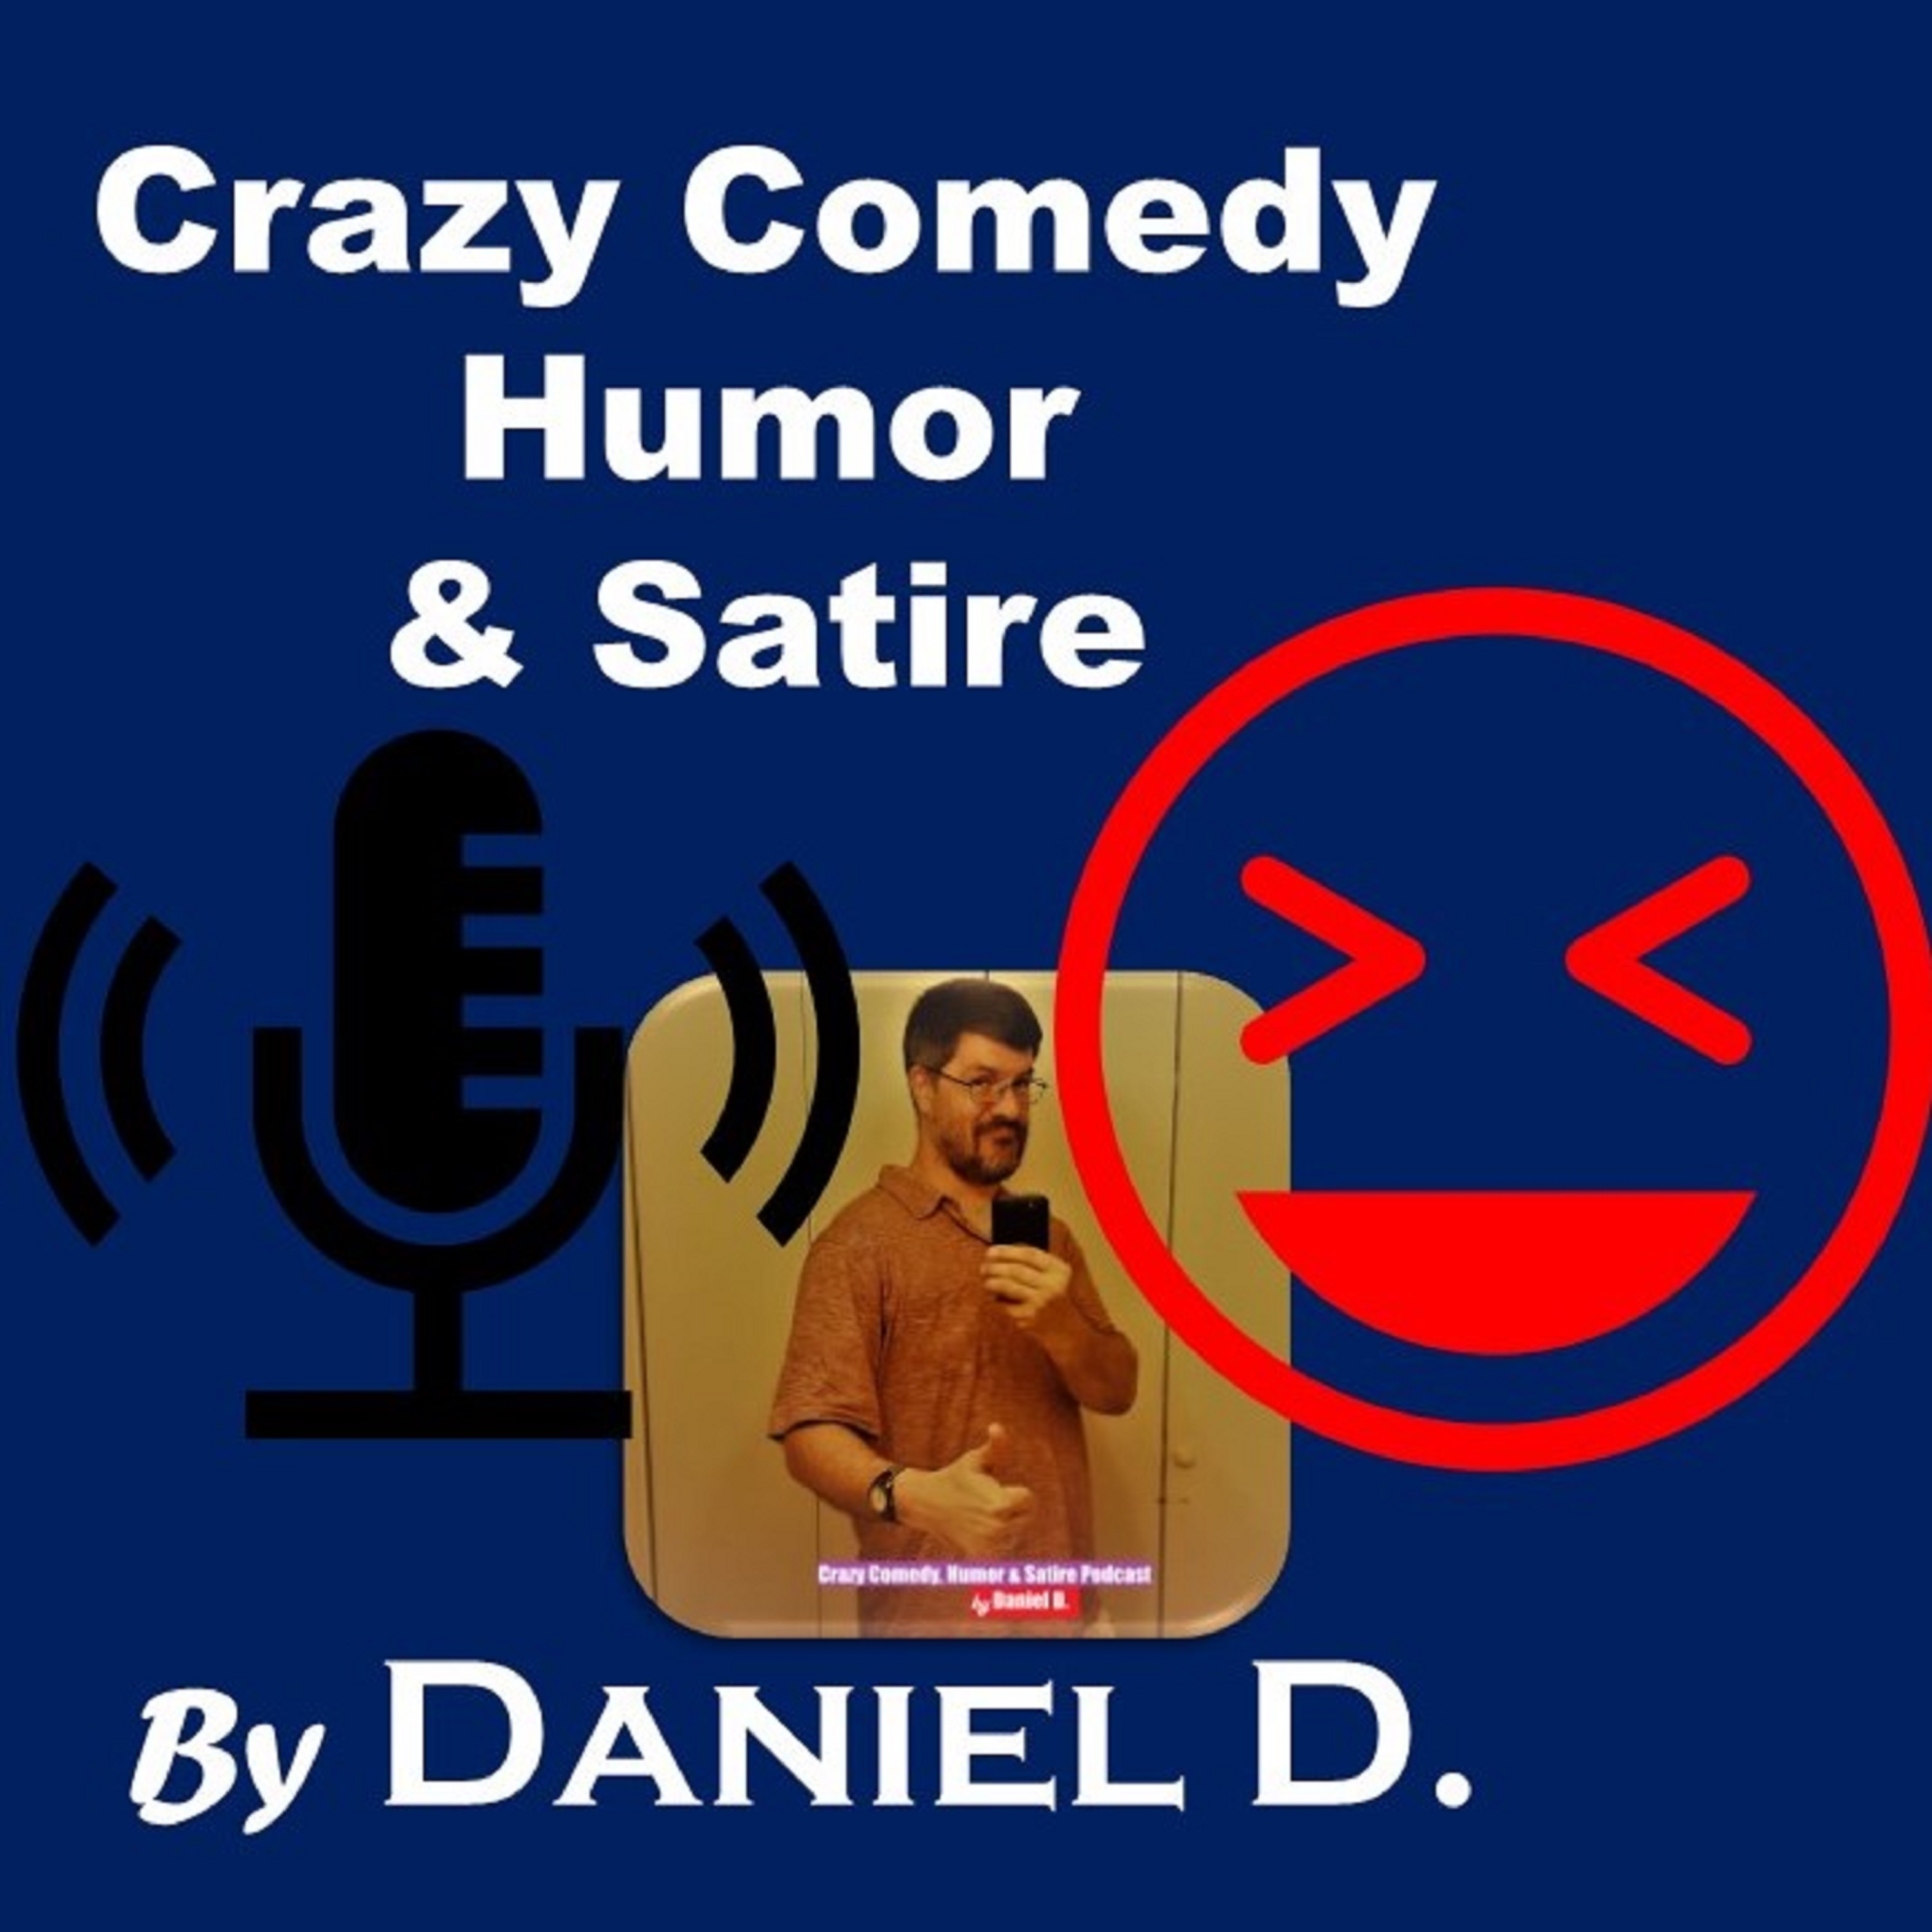 Artwork for Episode 8 of The Crazy Comedy, Humor & Satire Podcast (Season 1)